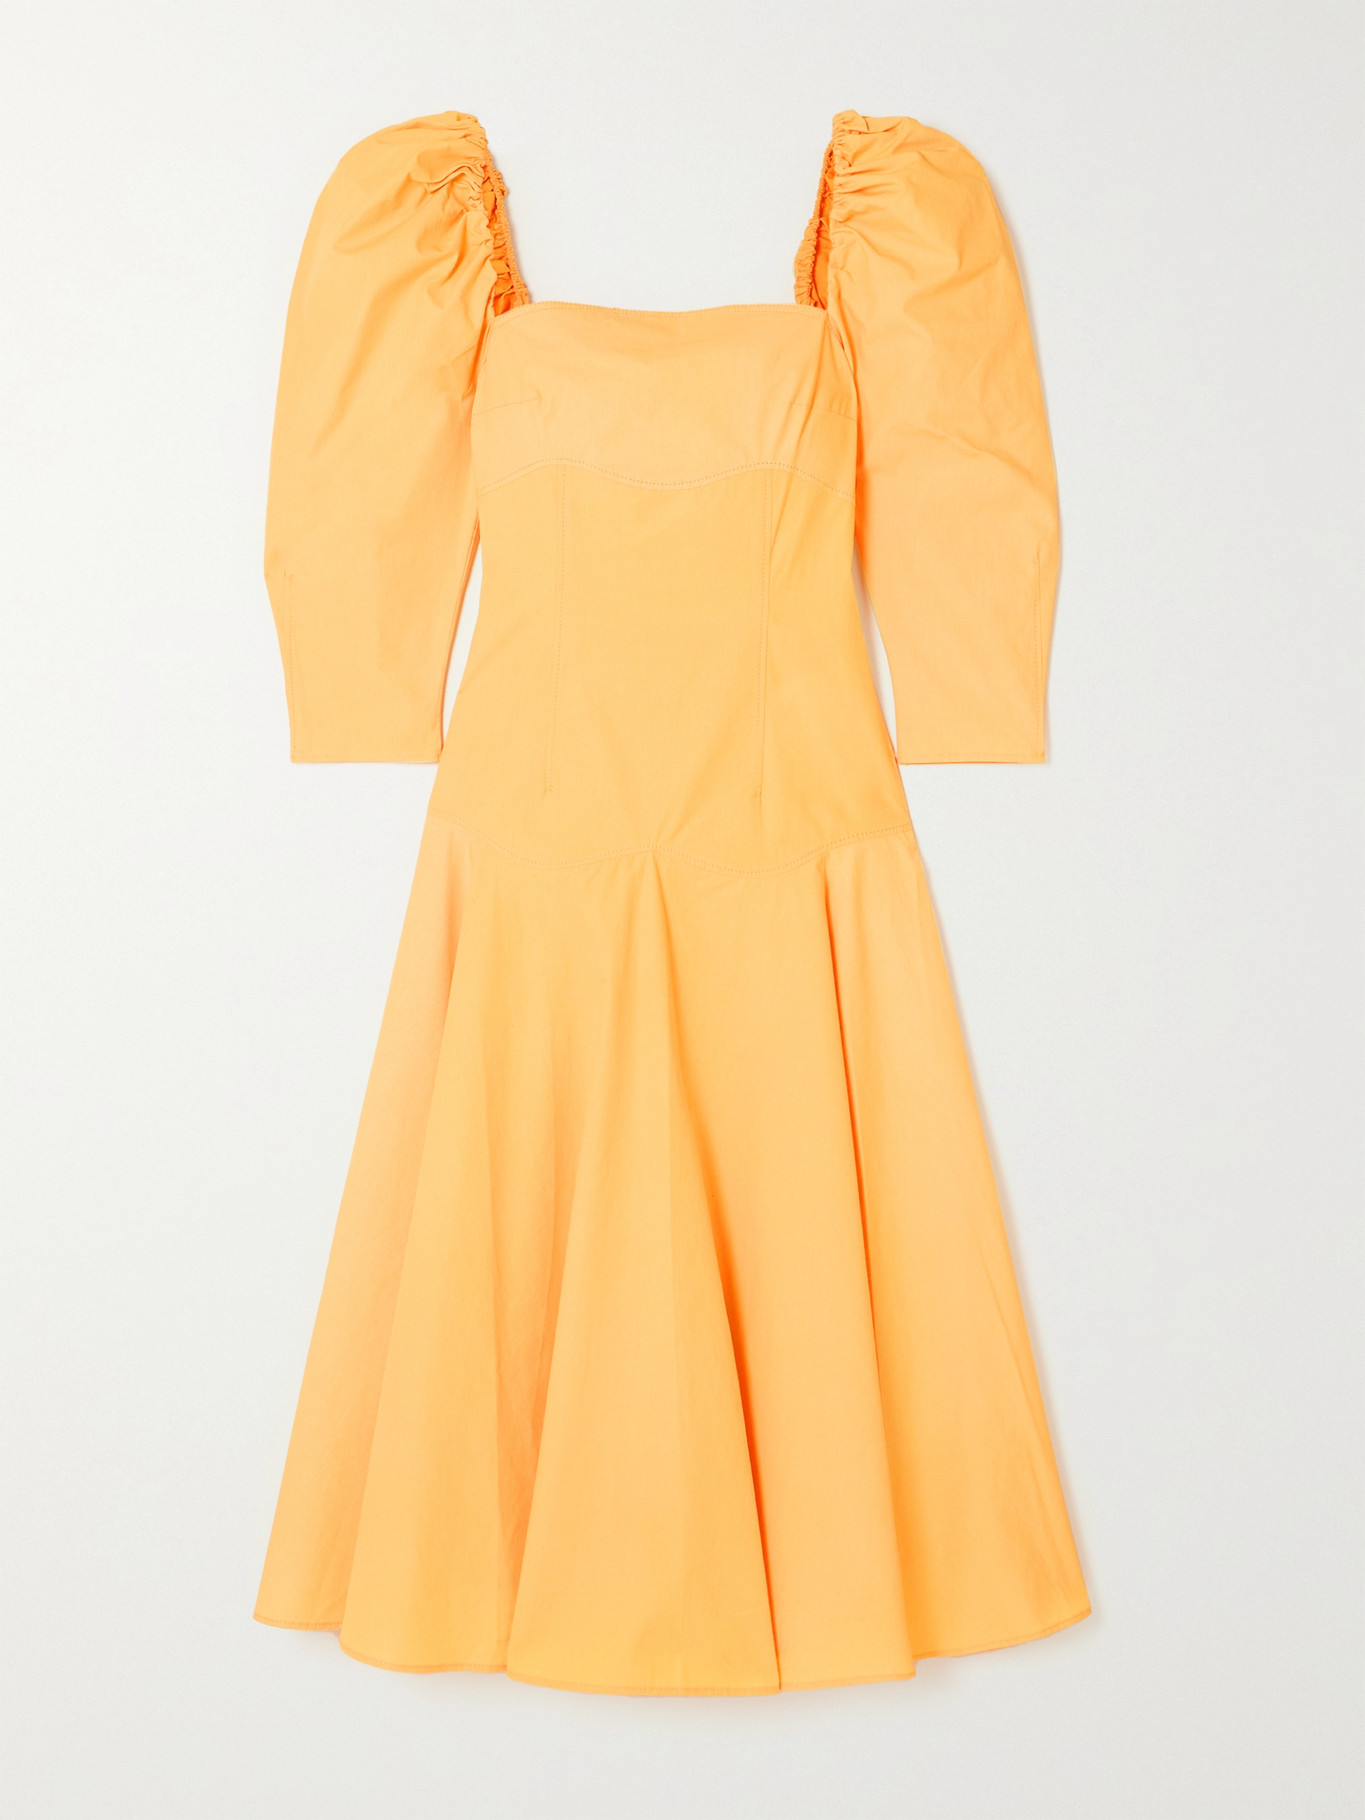 REJINA PYO - + Net Sustain Celeste Organic Cotton-poplin Midi Dress - Yellow - UK8